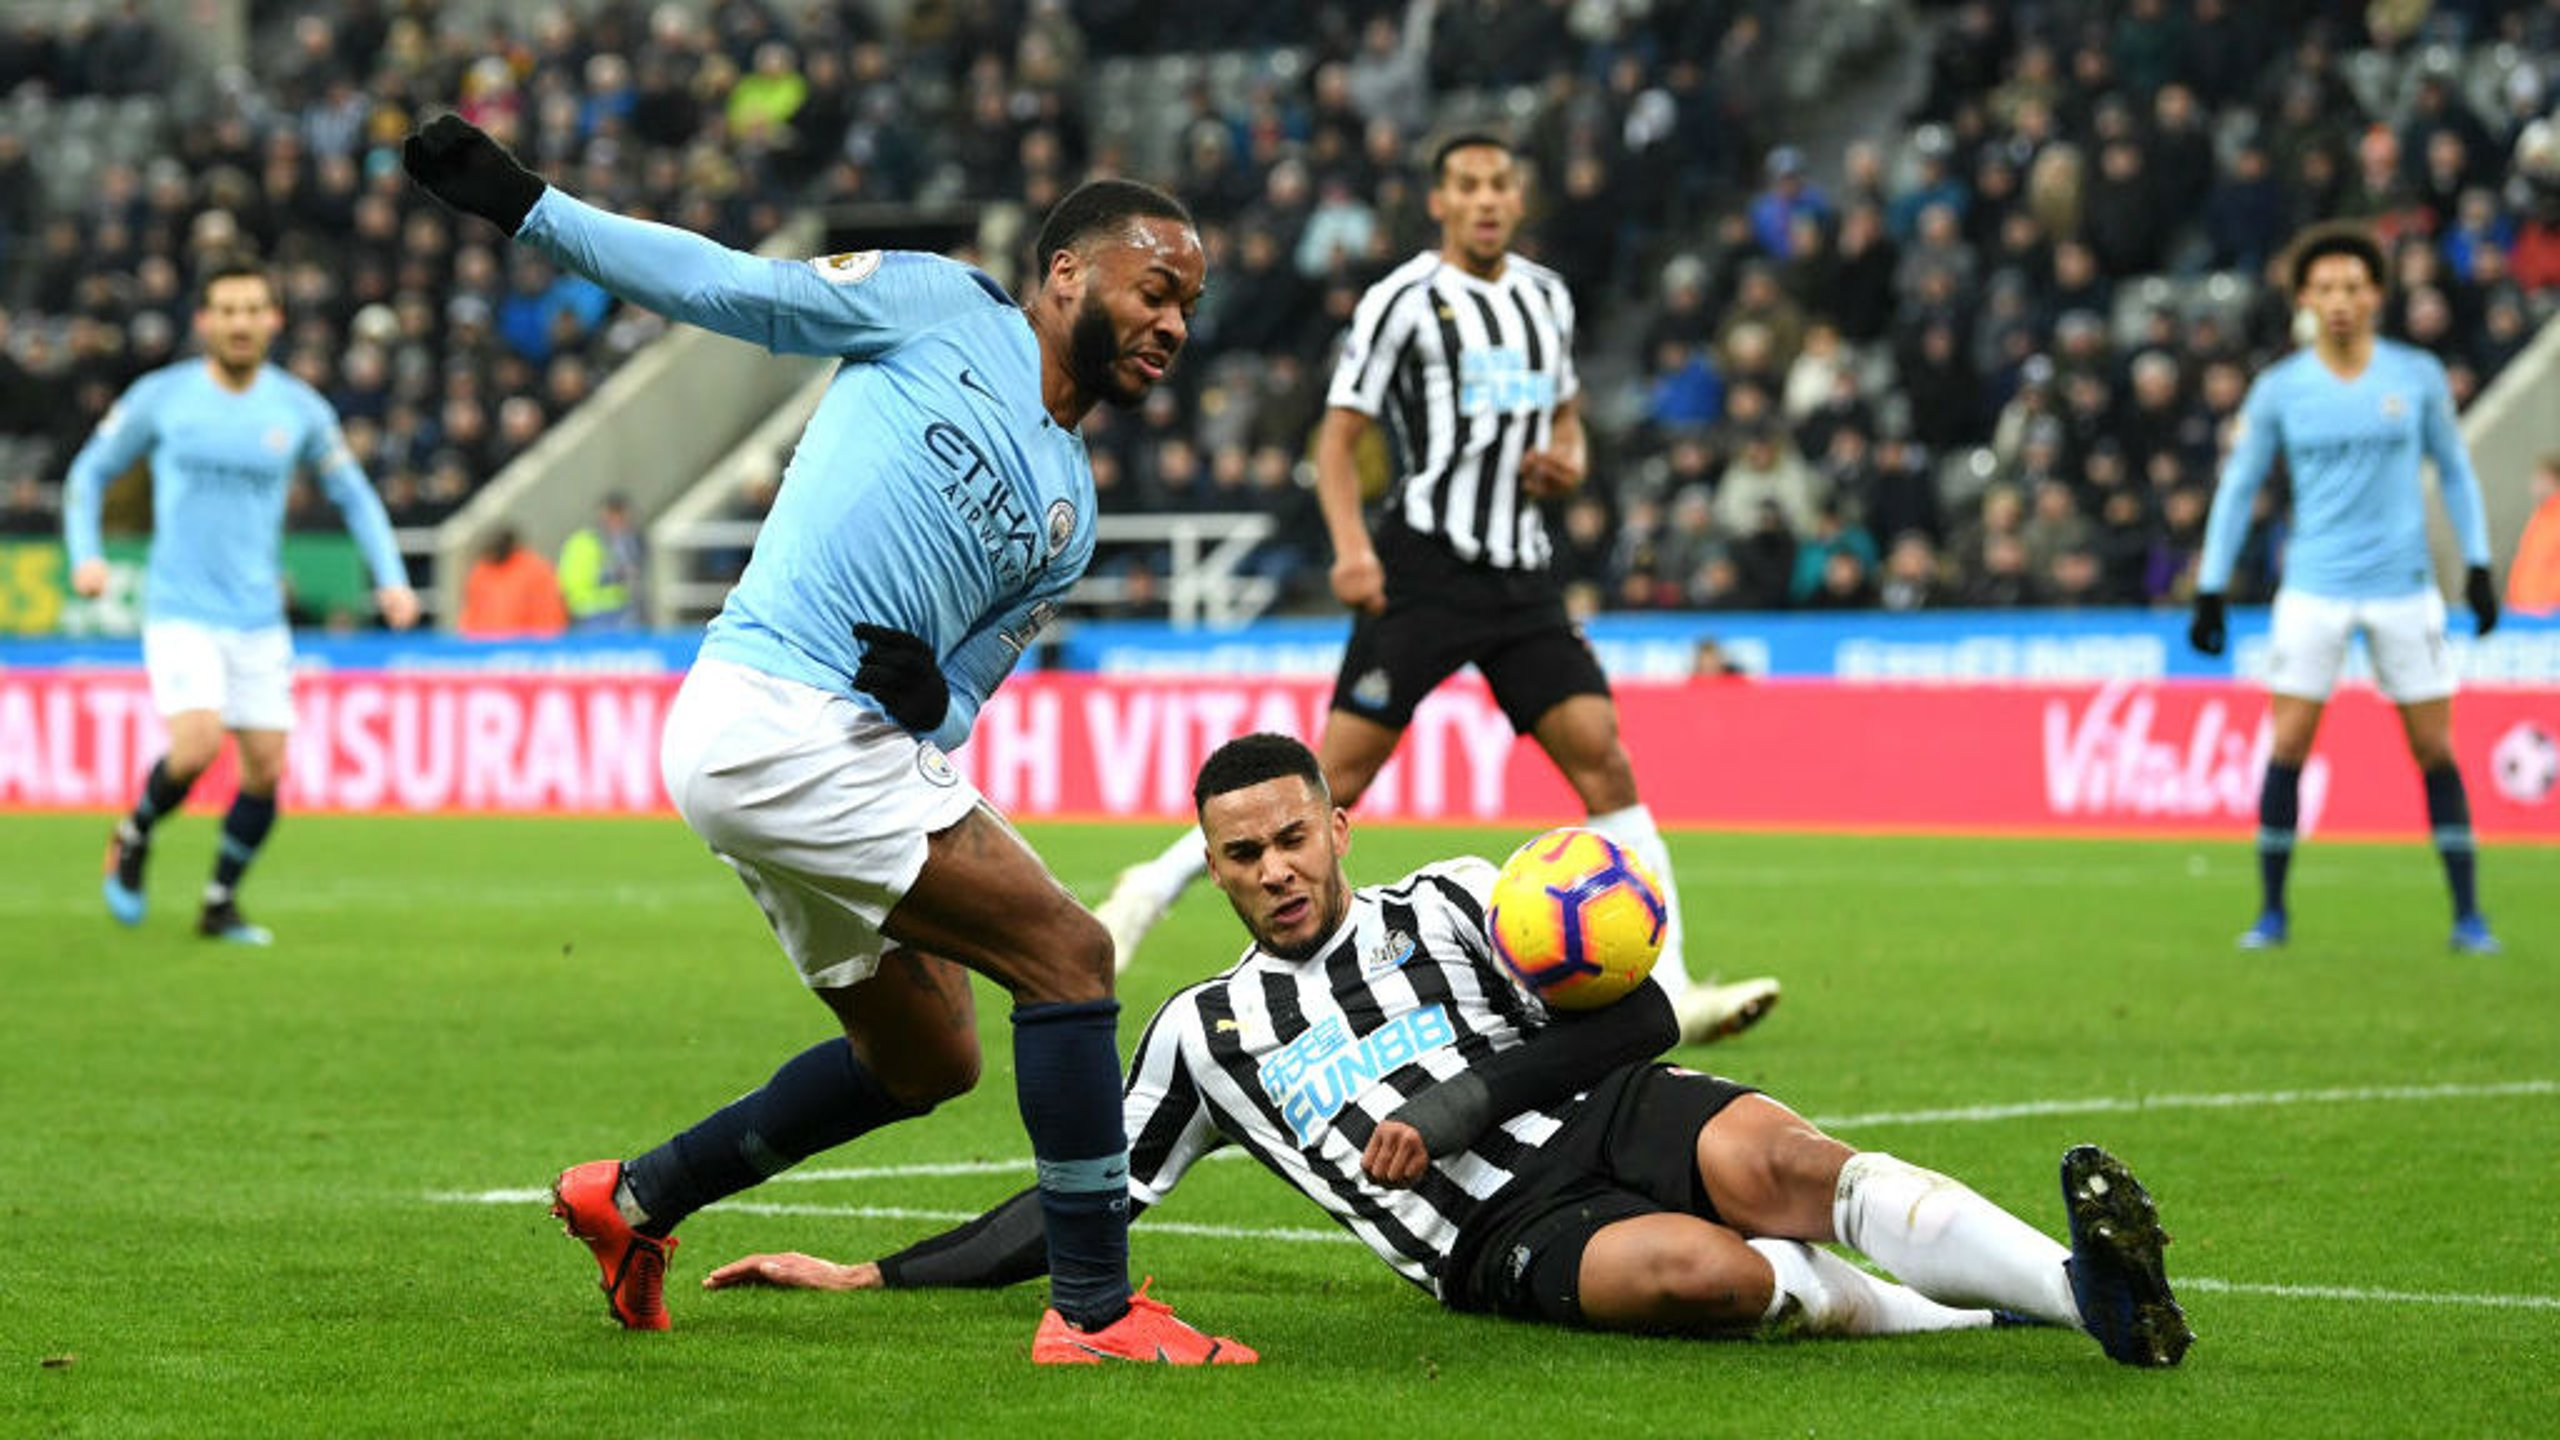 CAUSING A STER: Raheem Sterling clips a cross into a dangerous area